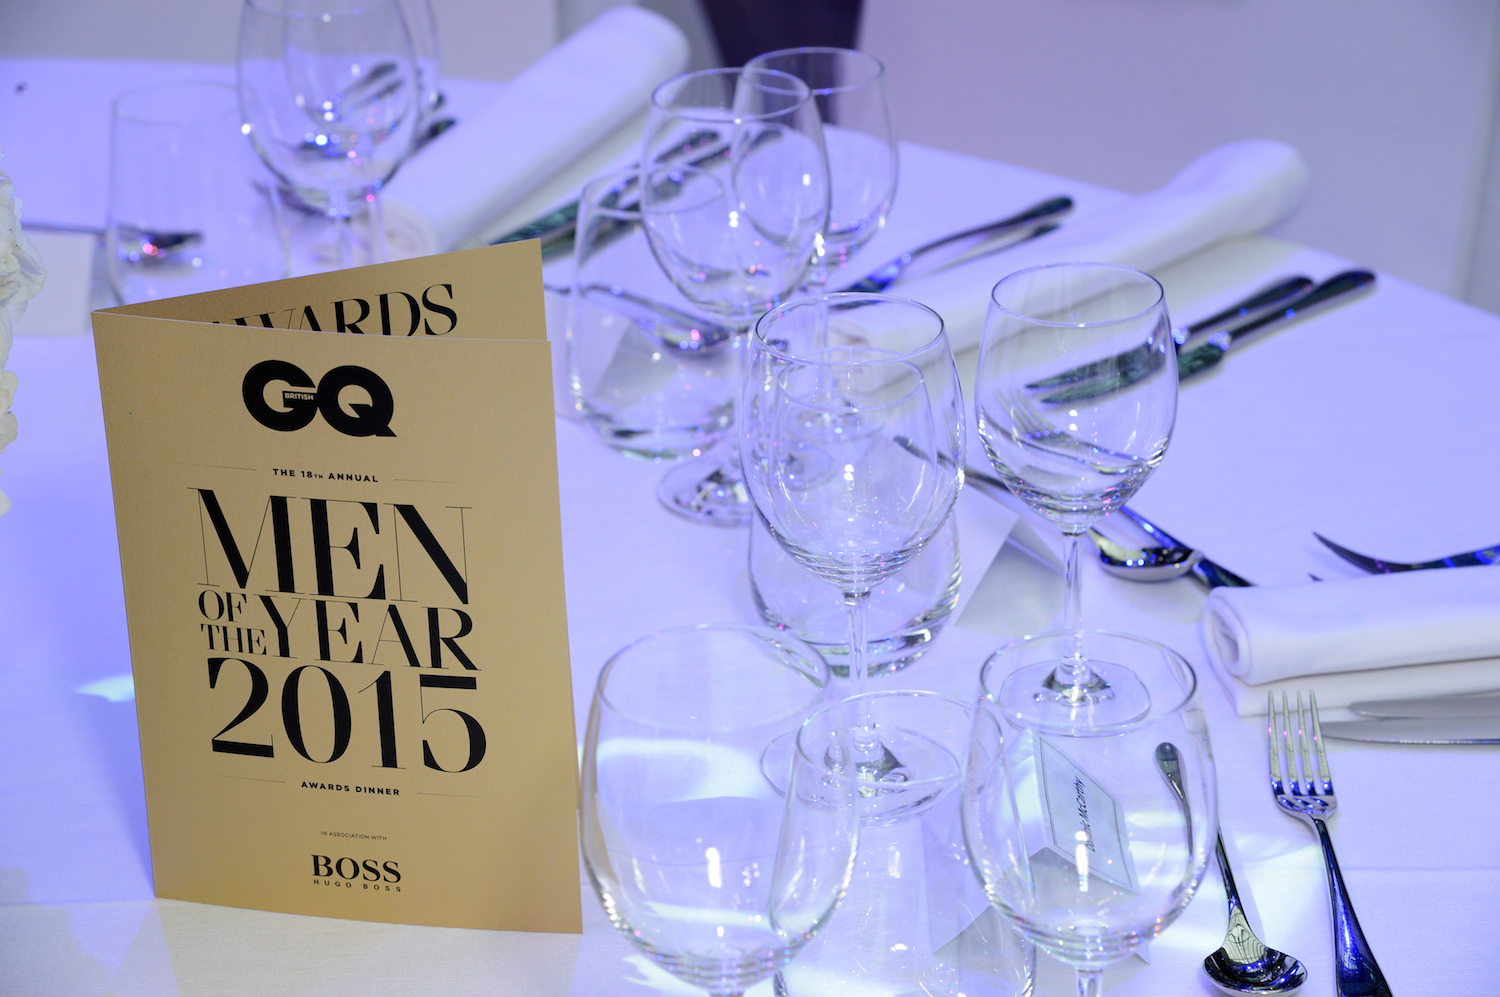 'GQ Men Of The Year Awards 2015 In Association With Hugo Boss' at Royal Opera House, London, Britain, Monday 8th September